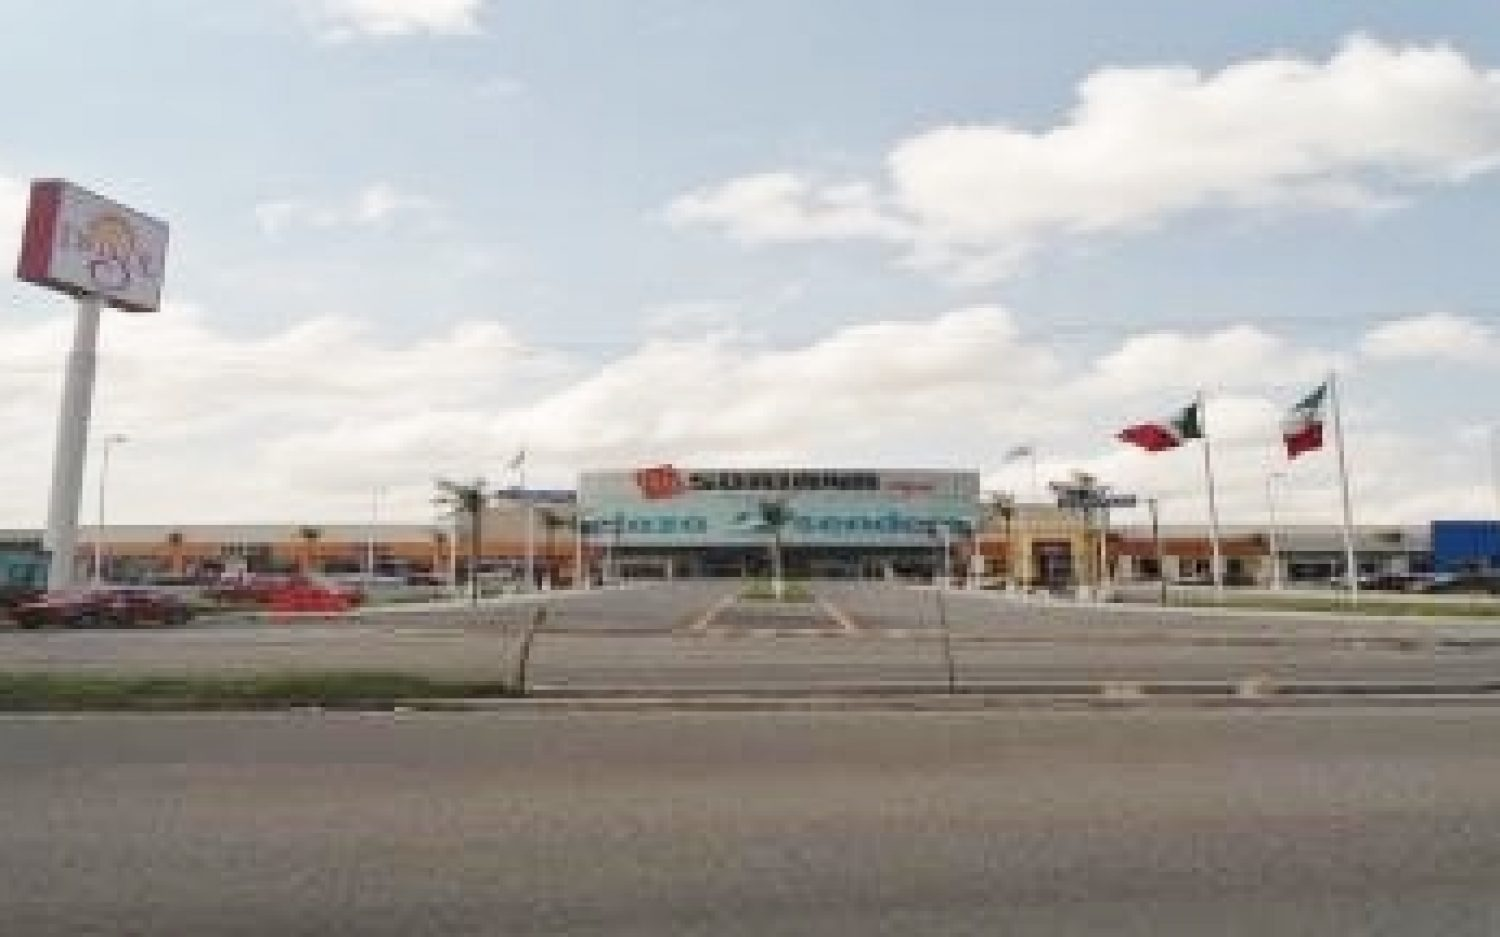 Co-Plaza Sendero Villahermosa (1)